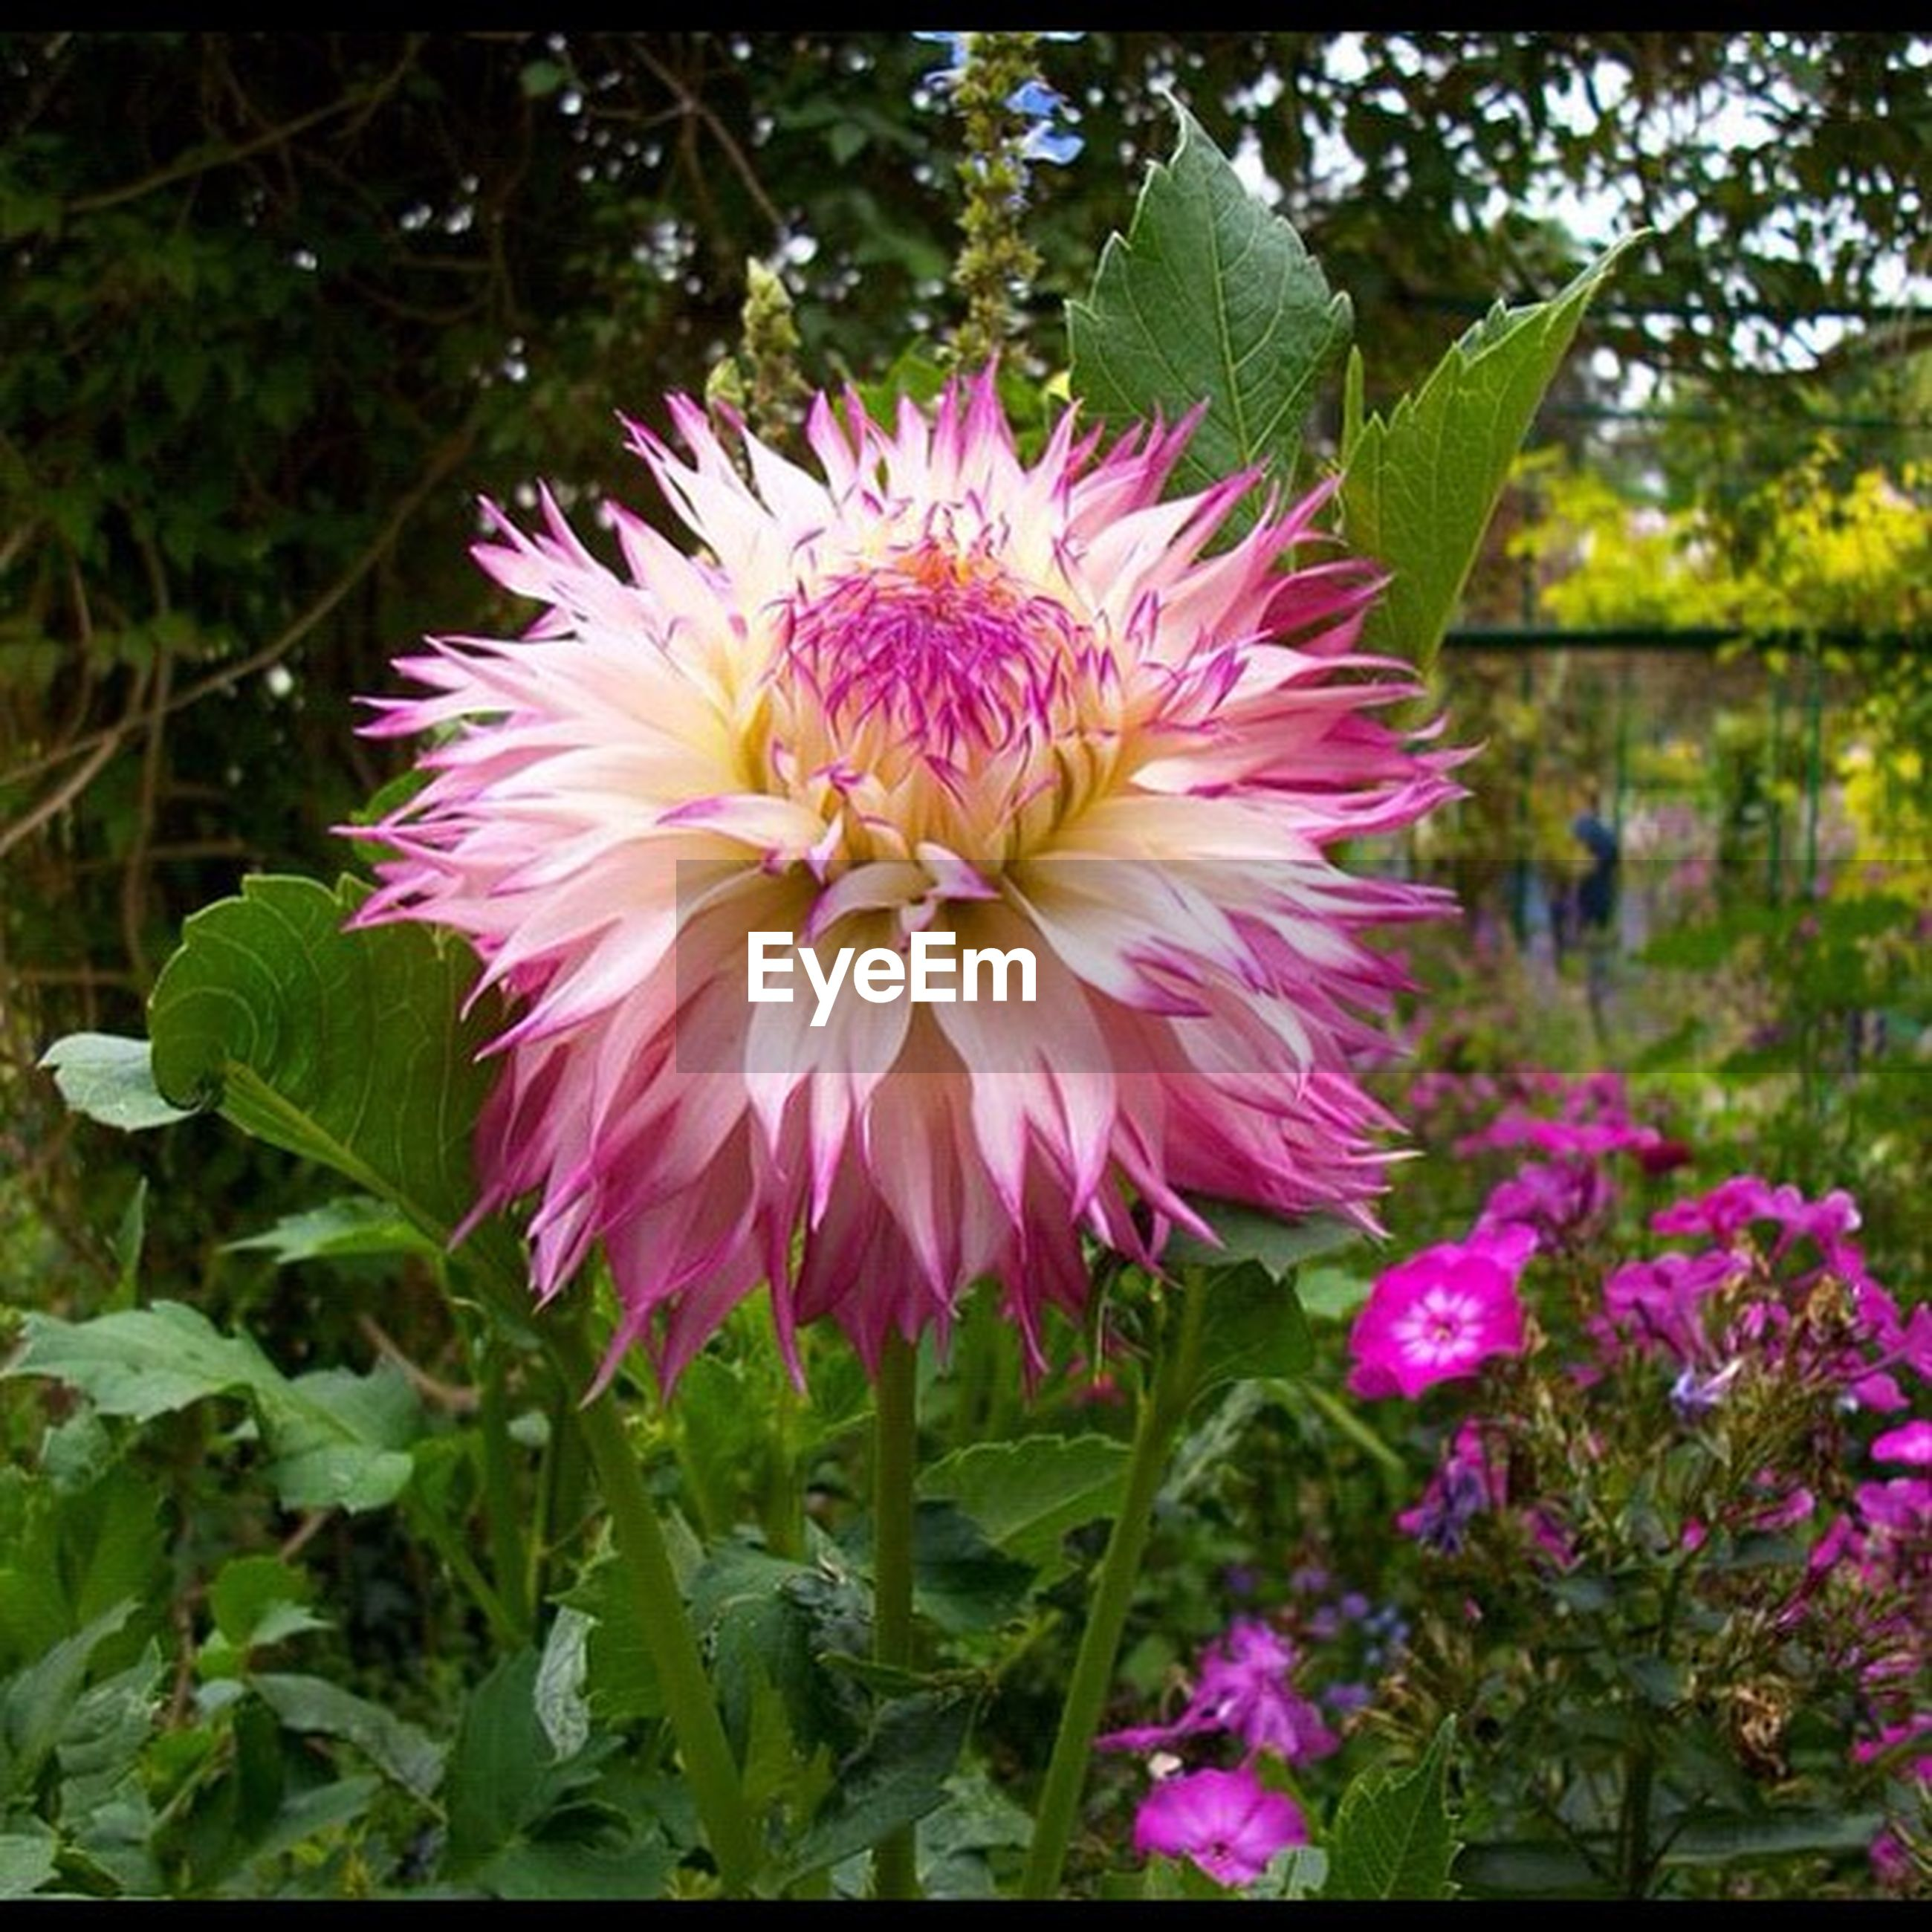 flower, petal, freshness, fragility, flower head, growth, beauty in nature, pink color, blooming, plant, nature, close-up, focus on foreground, in bloom, single flower, blossom, pollen, outdoors, park - man made space, day